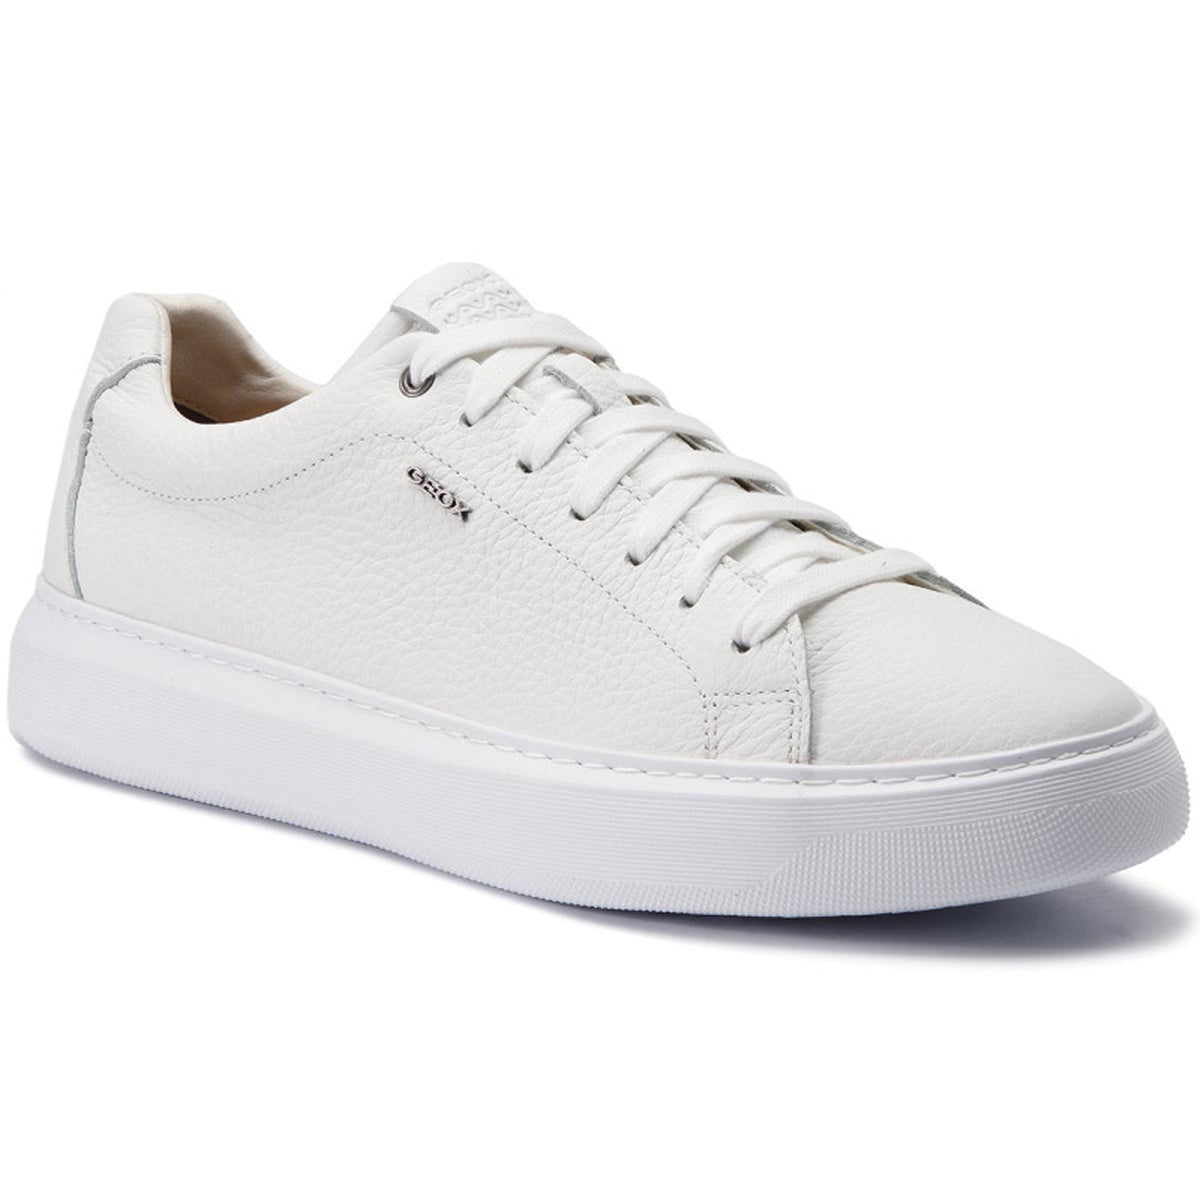 GEOX - DEIVEN White Grained Leather Trainers U845WB000T0C1000